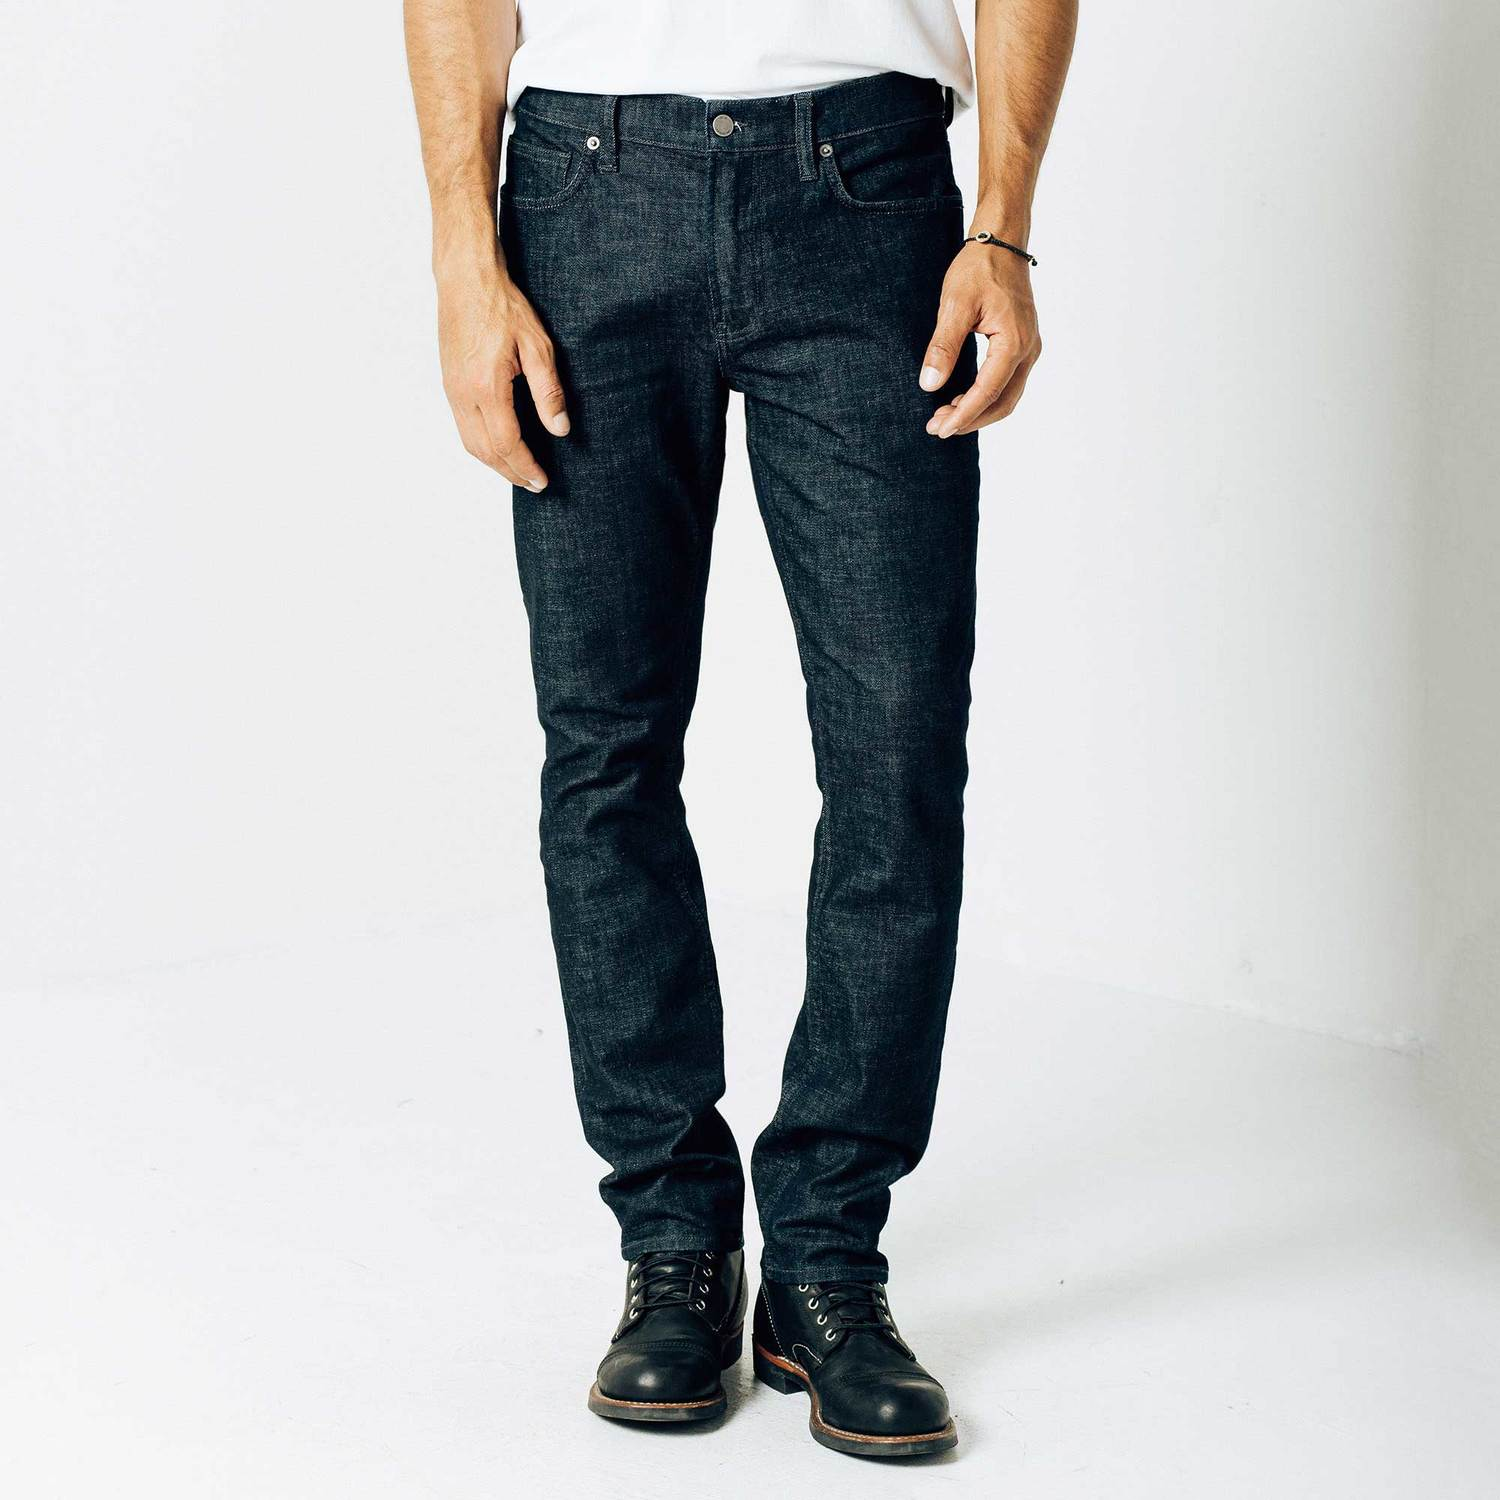 Skinny-Slim Jeans in Dark Wash Resin